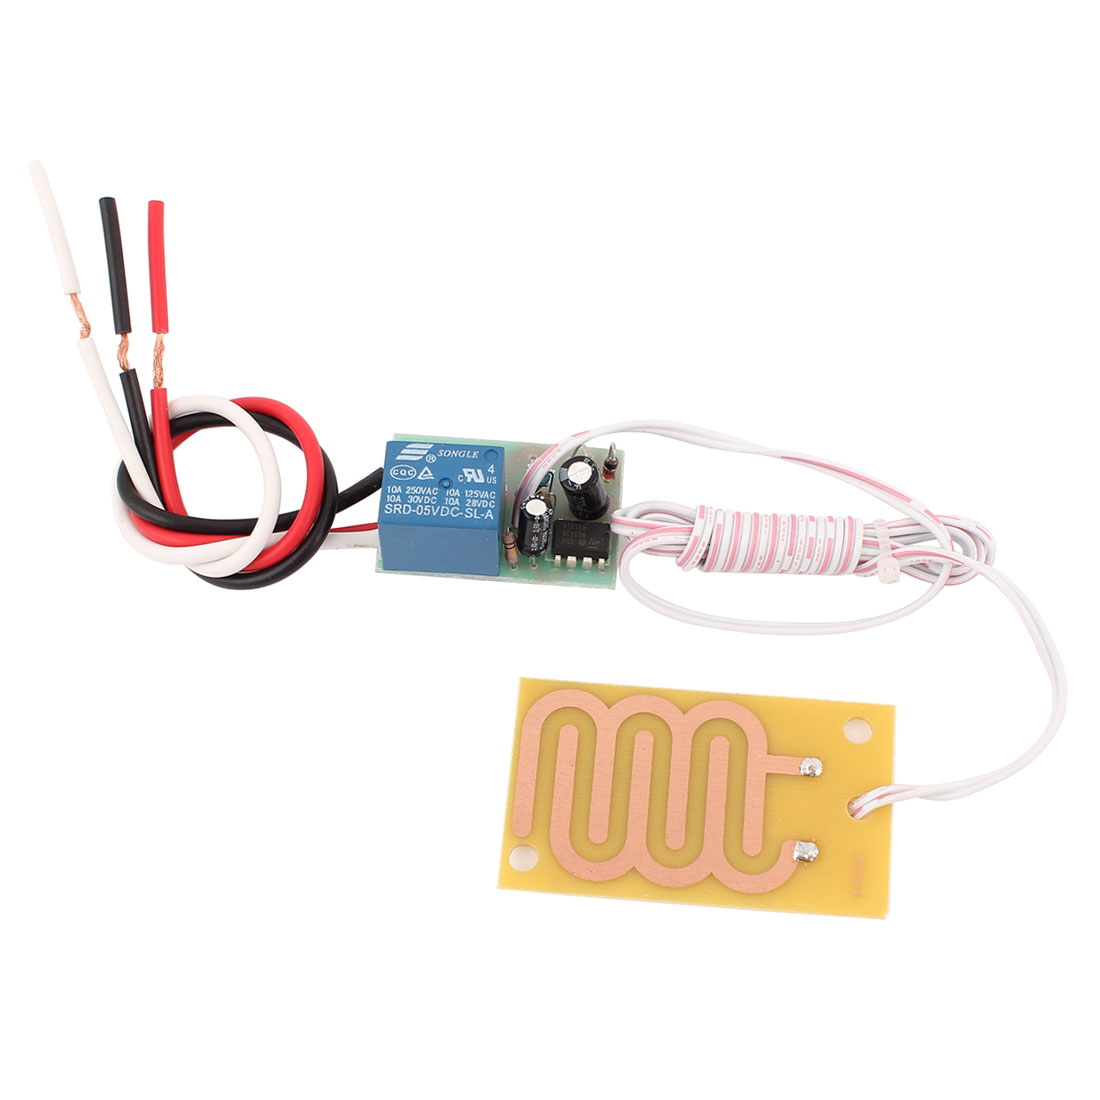 DC 5V 10A Rain Detector Switch Raindrop Detection Sensor Module